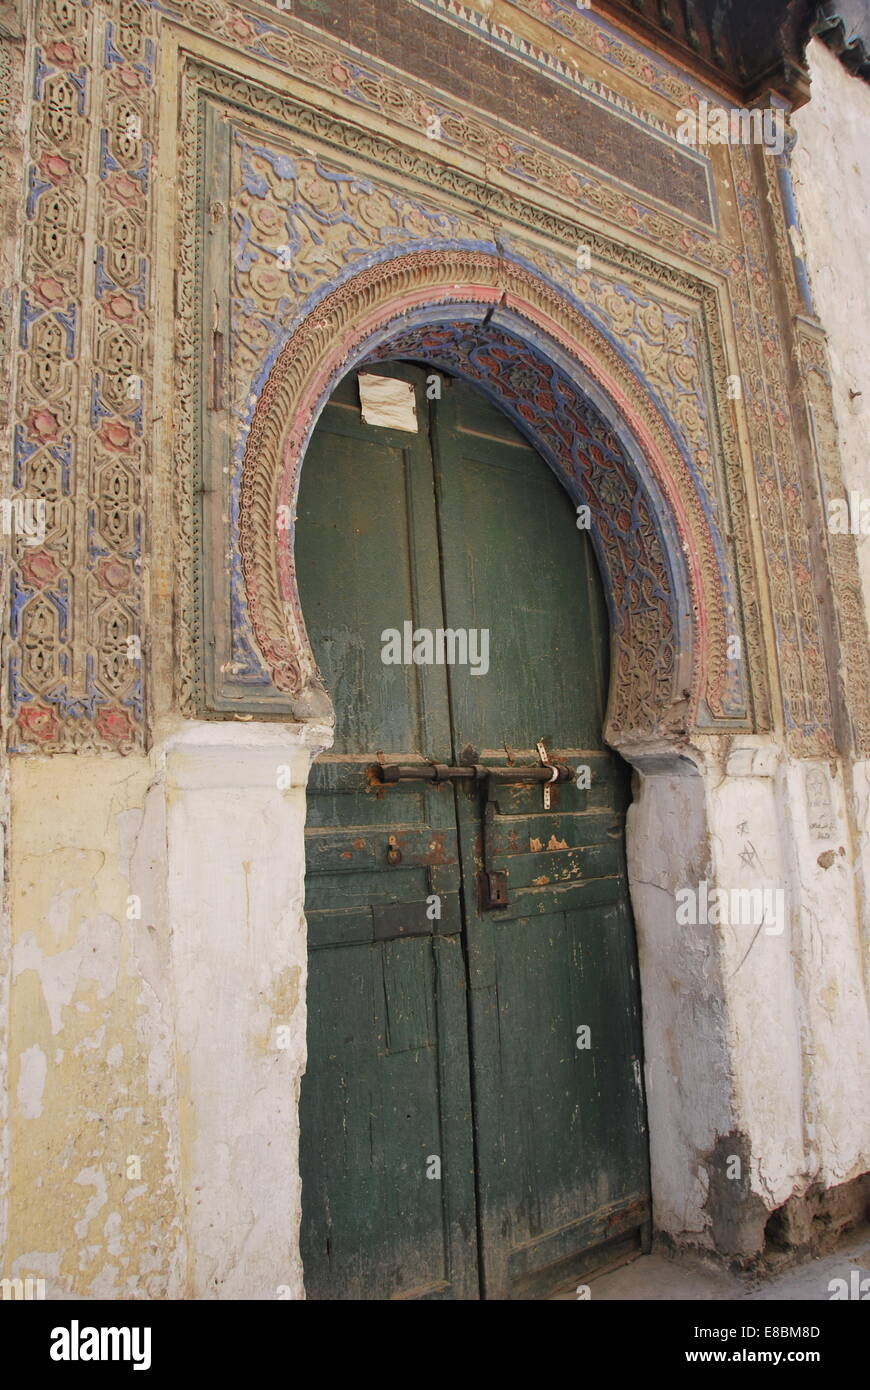 Superb Traditional Decorated Ancient Doorway In Medina. Green Painted  Wooden Door.Islamic Decoration